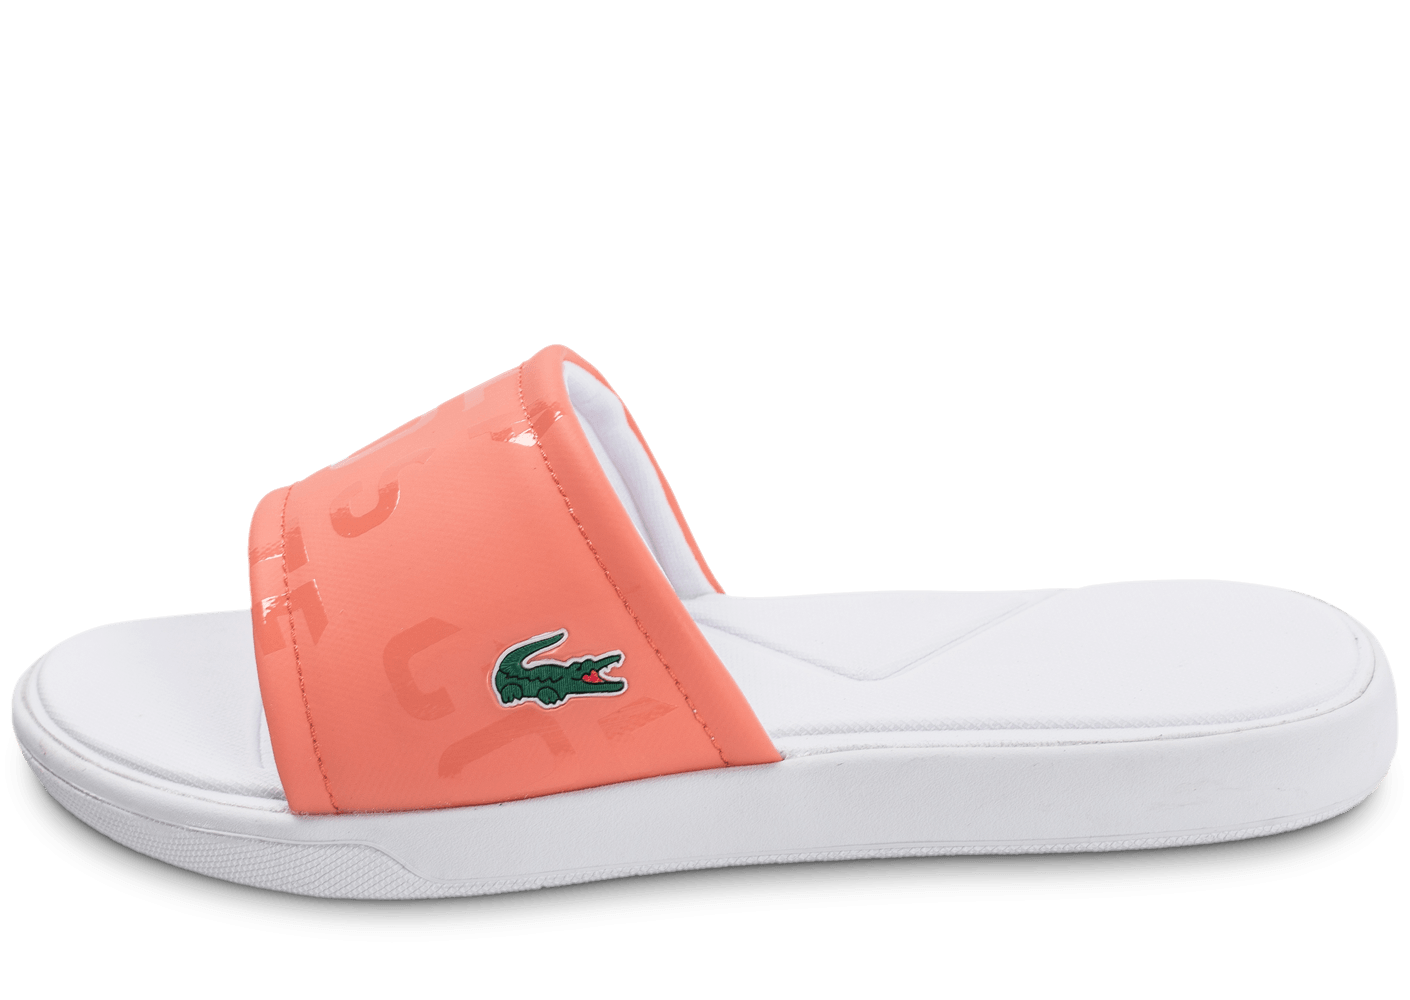 79e7cc8e7ab2 chaussure lacoste chausport,chaussures lacoste carnaby evo junior ...